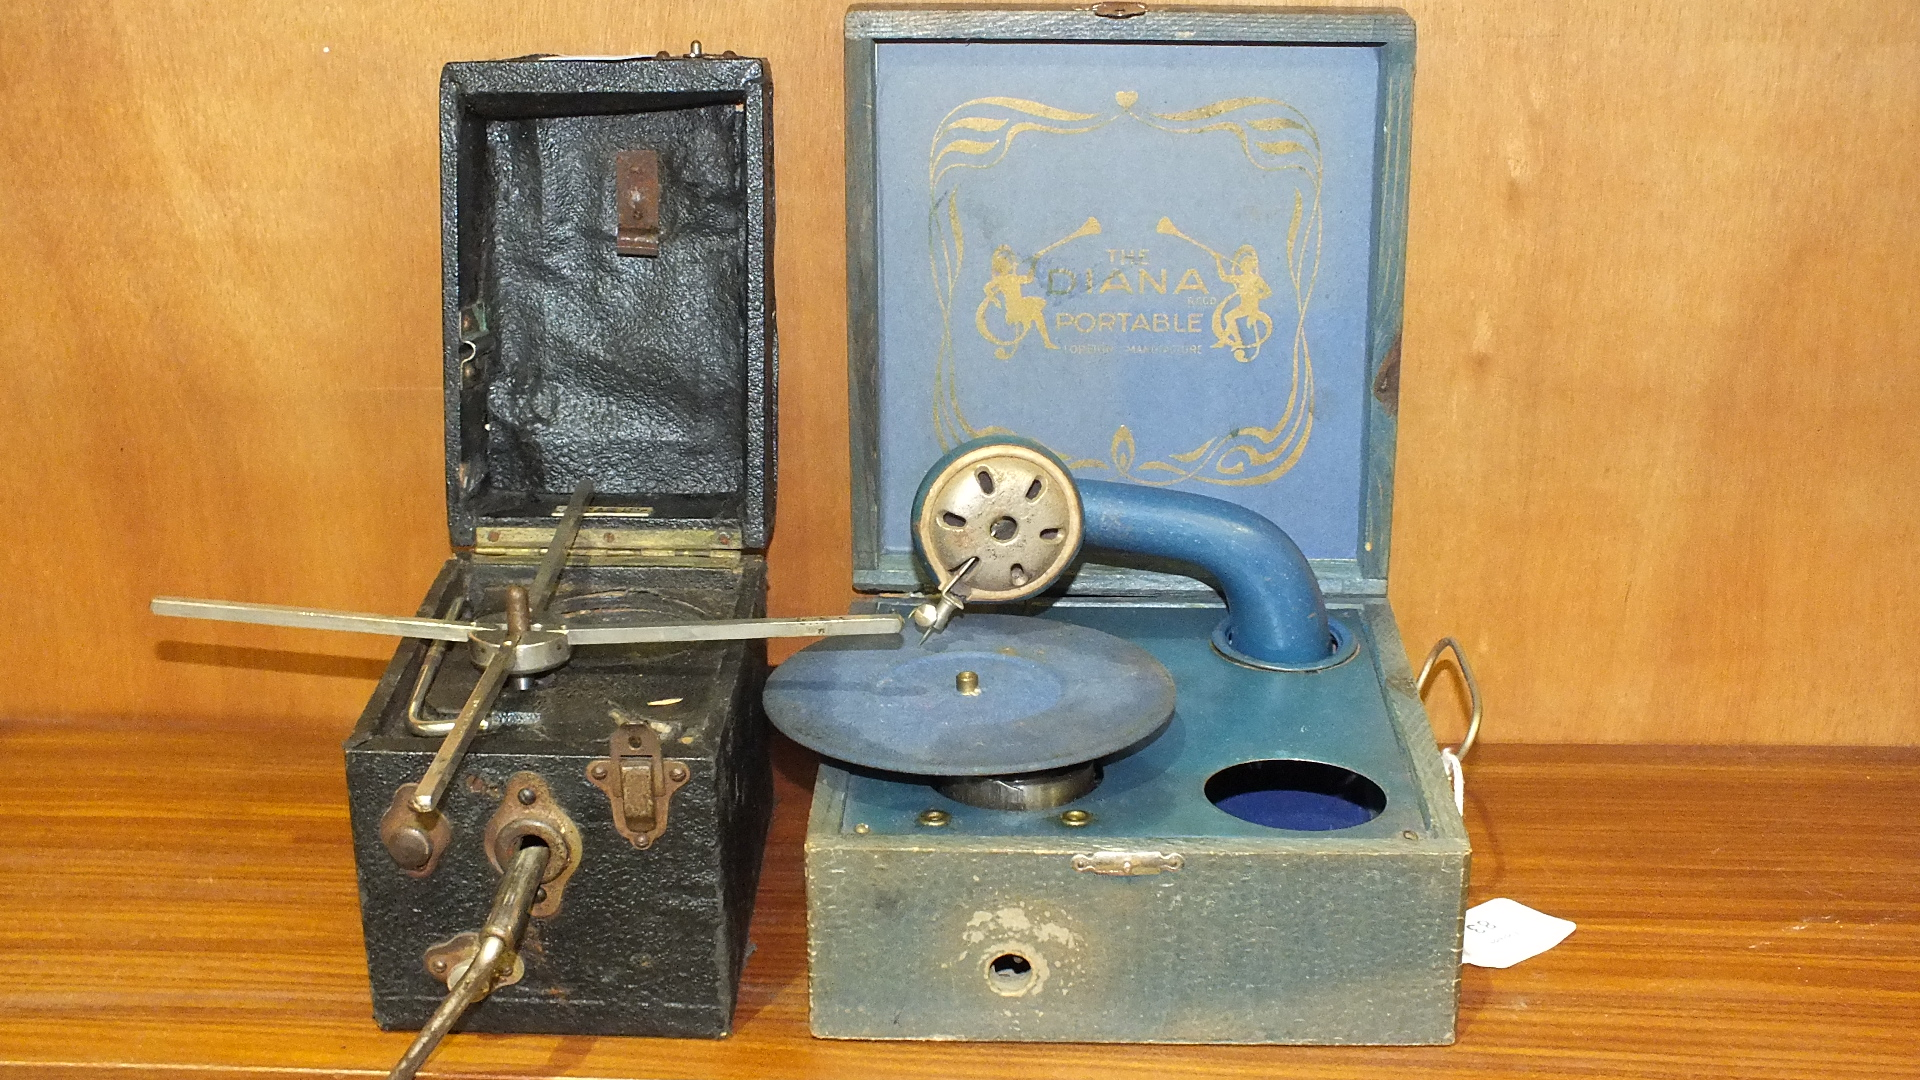 """Lot 83 - An Acott & Co. Ltd picnic gramophone, (incomplete) and a """"Diana Portable"""" gramophone, (both a/f), ("""